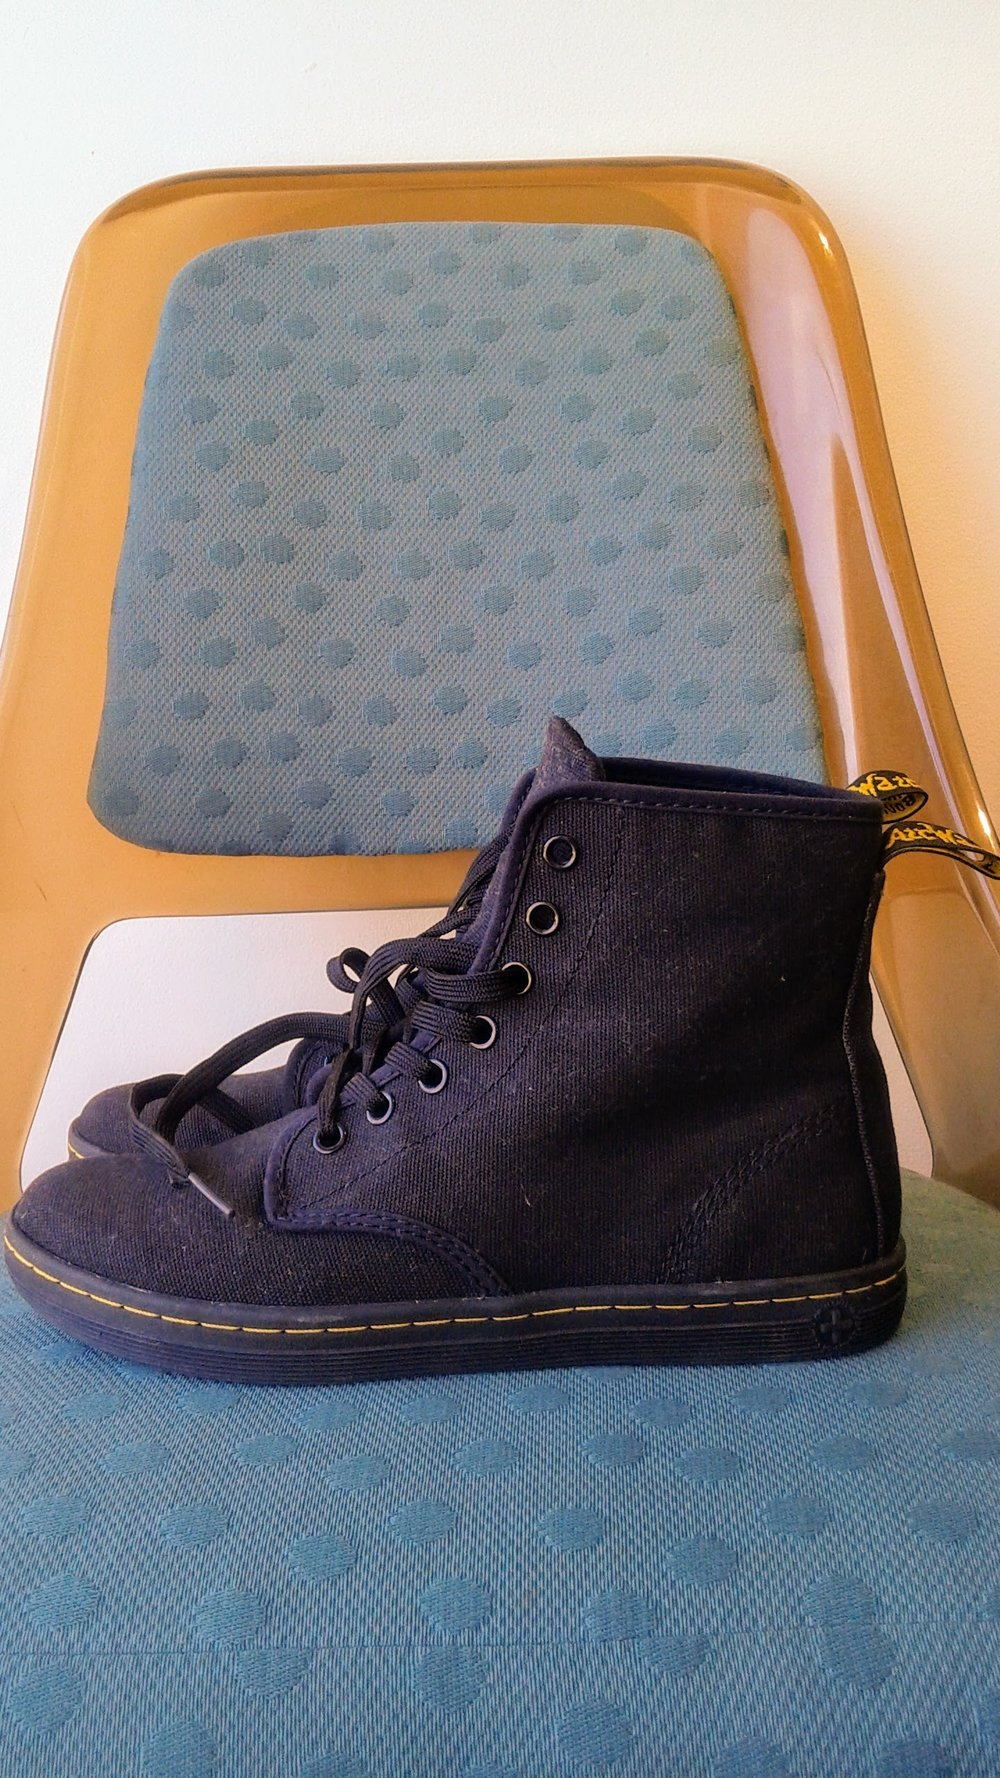 Dr Martin shoes; S7.5, $42